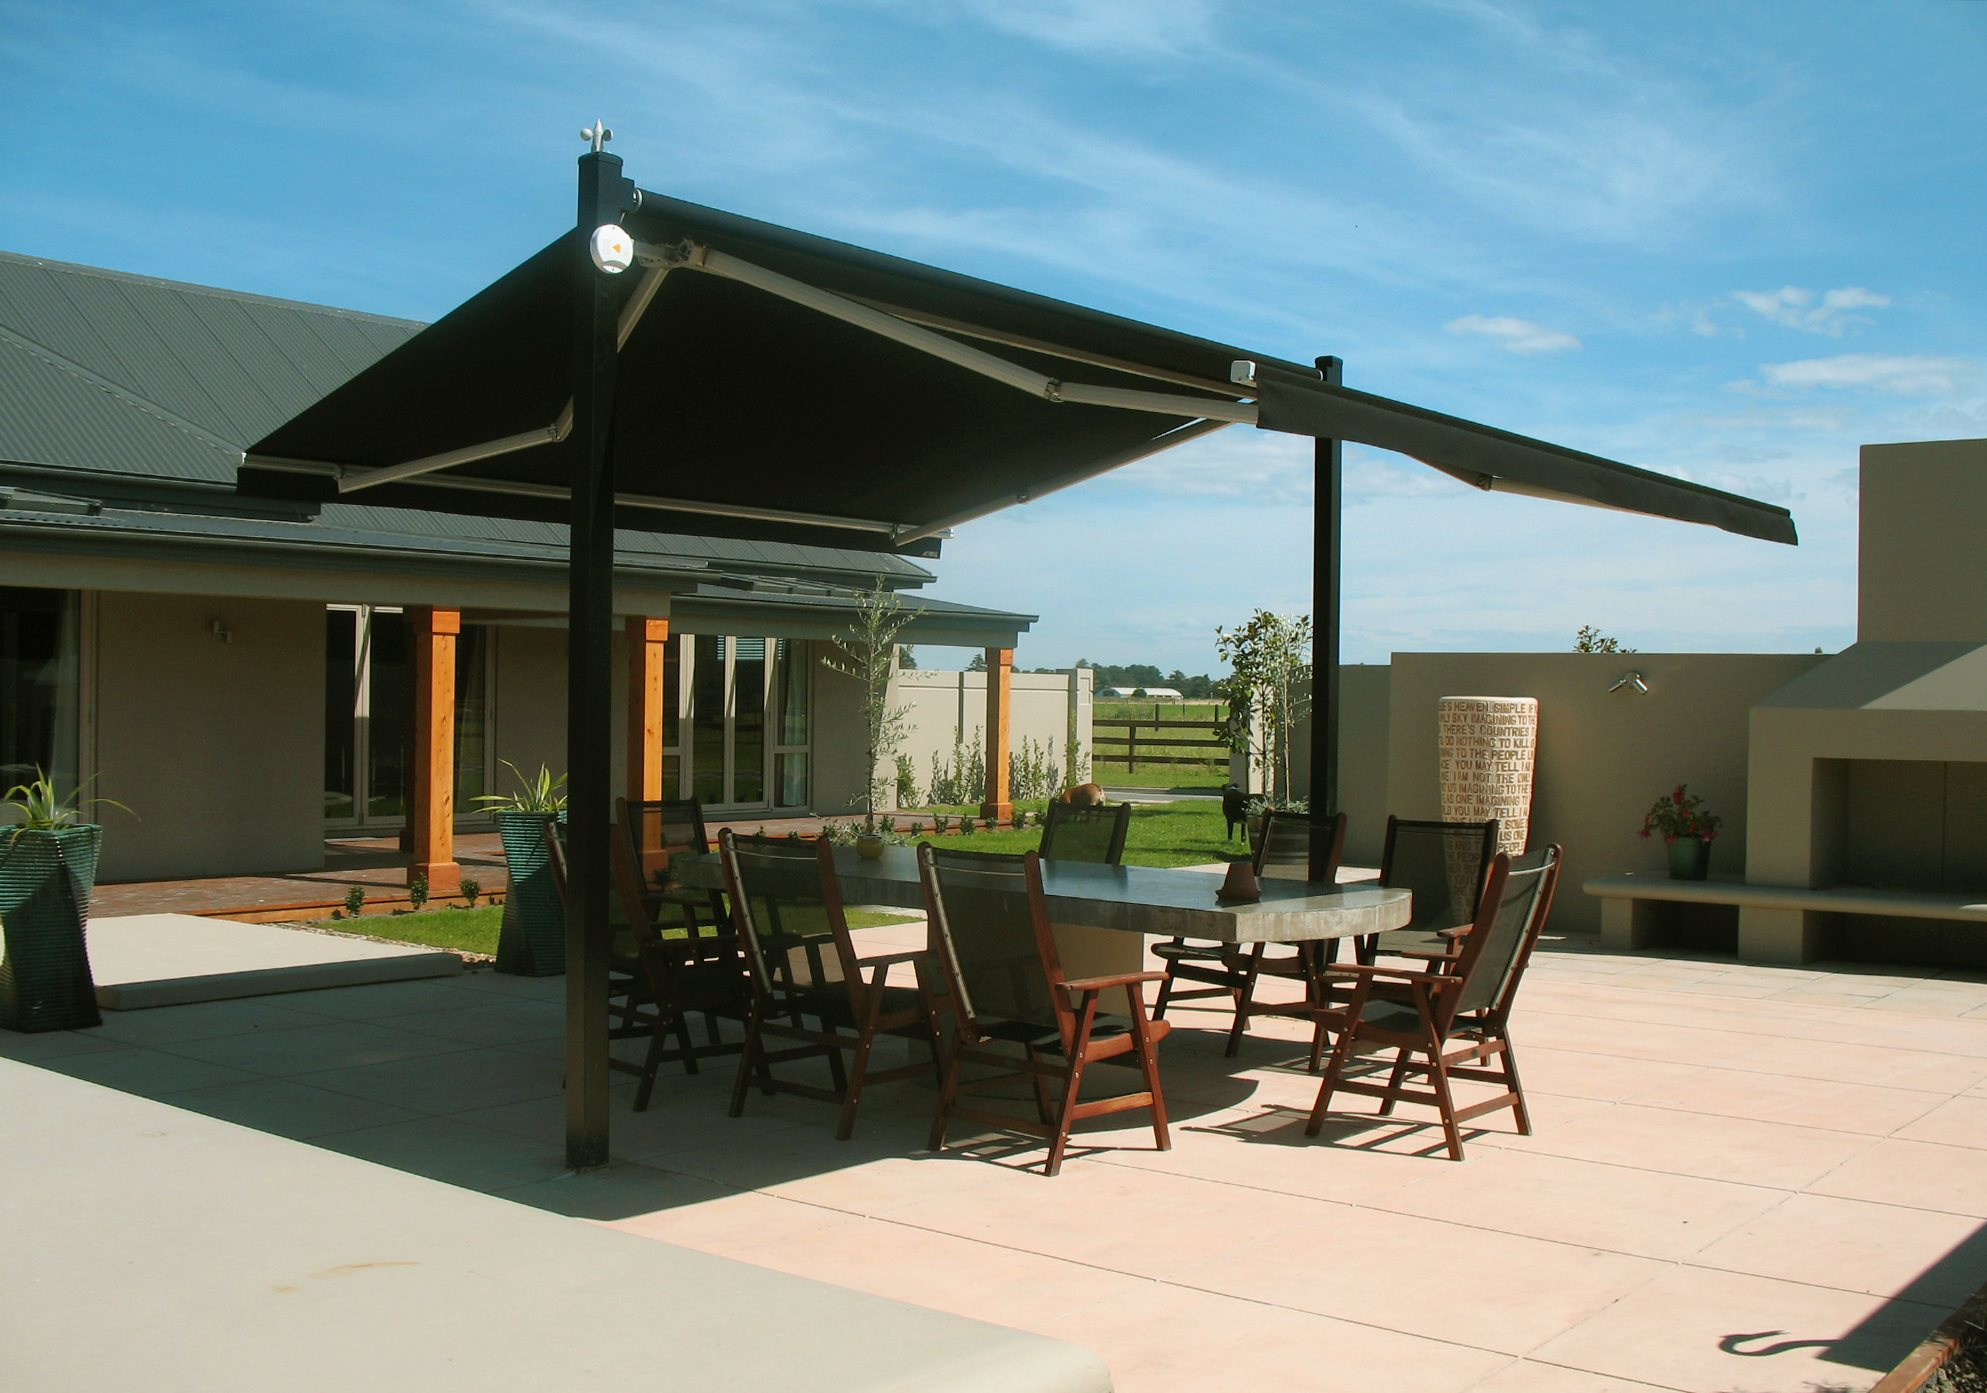 Plaza canopy open providing shade for the outdoor dining table